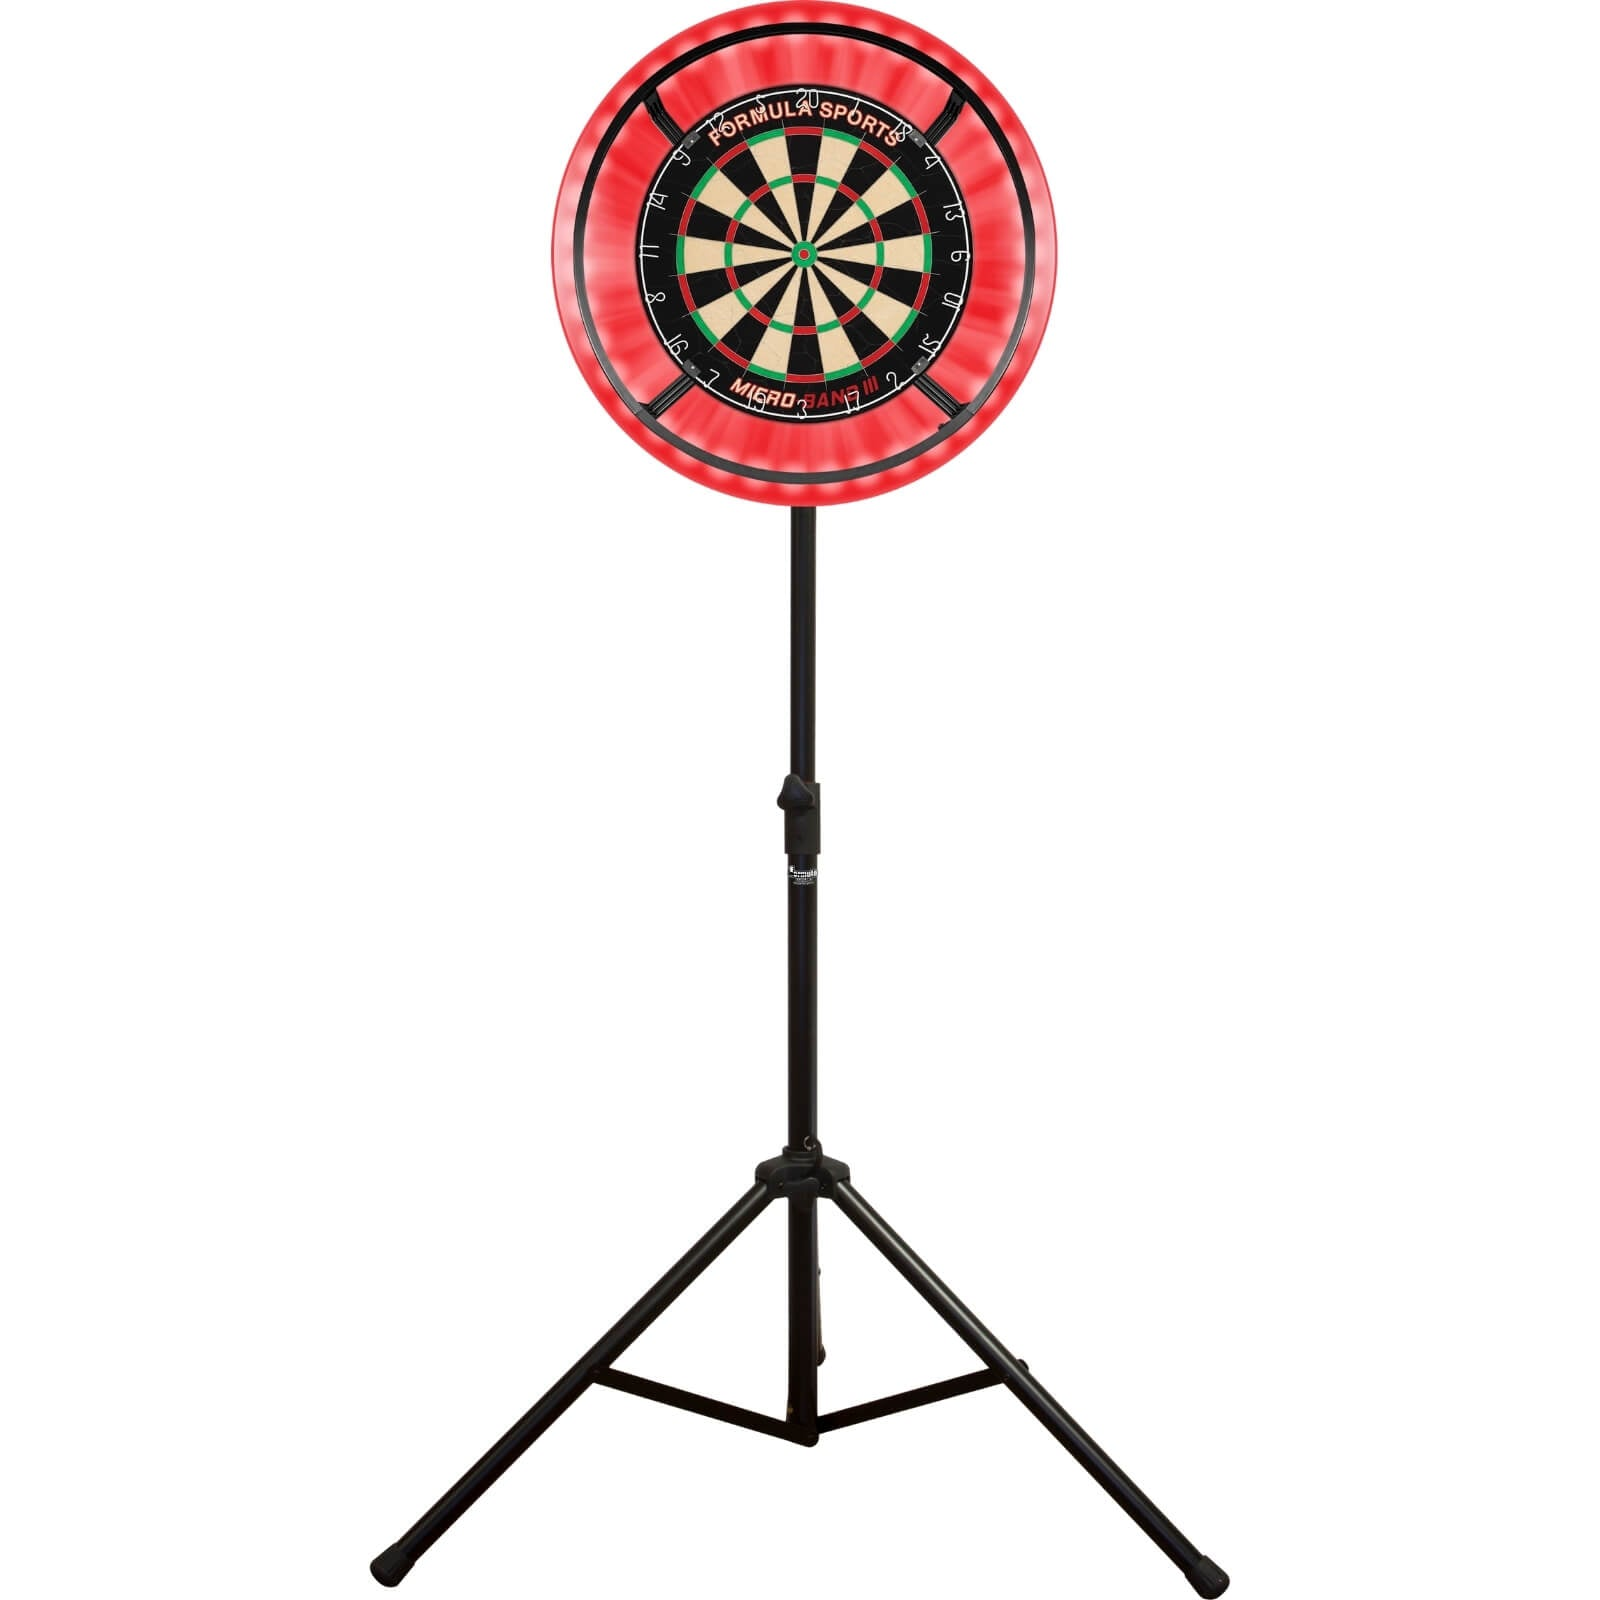 Dartboard Accessories - Formula Sports - Portable Tripod Dartboard Stand